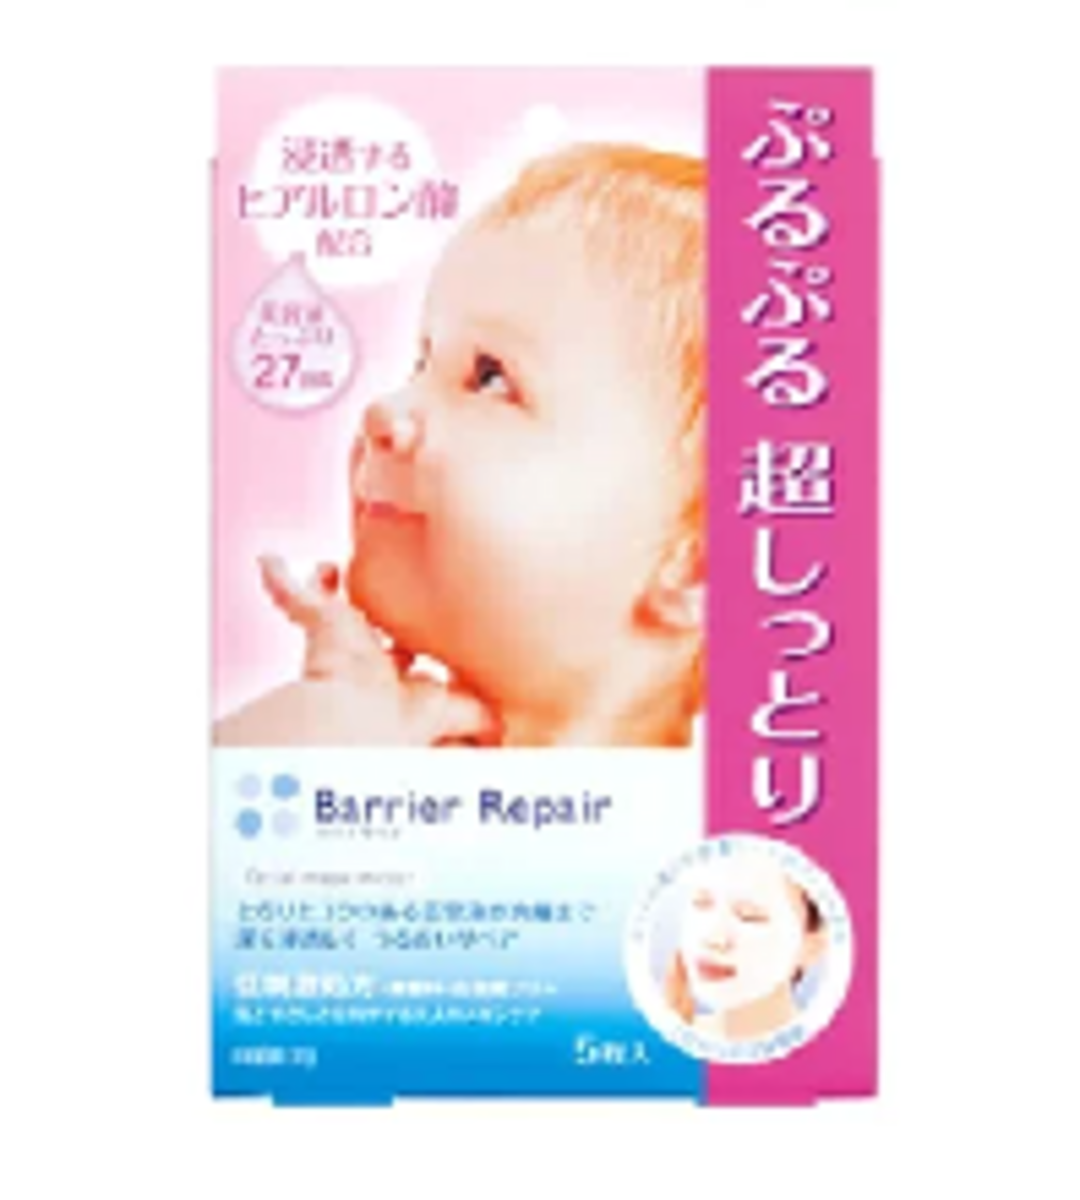 Mandom barrier repair facial mask moist 5 SHEETS  (pink box)